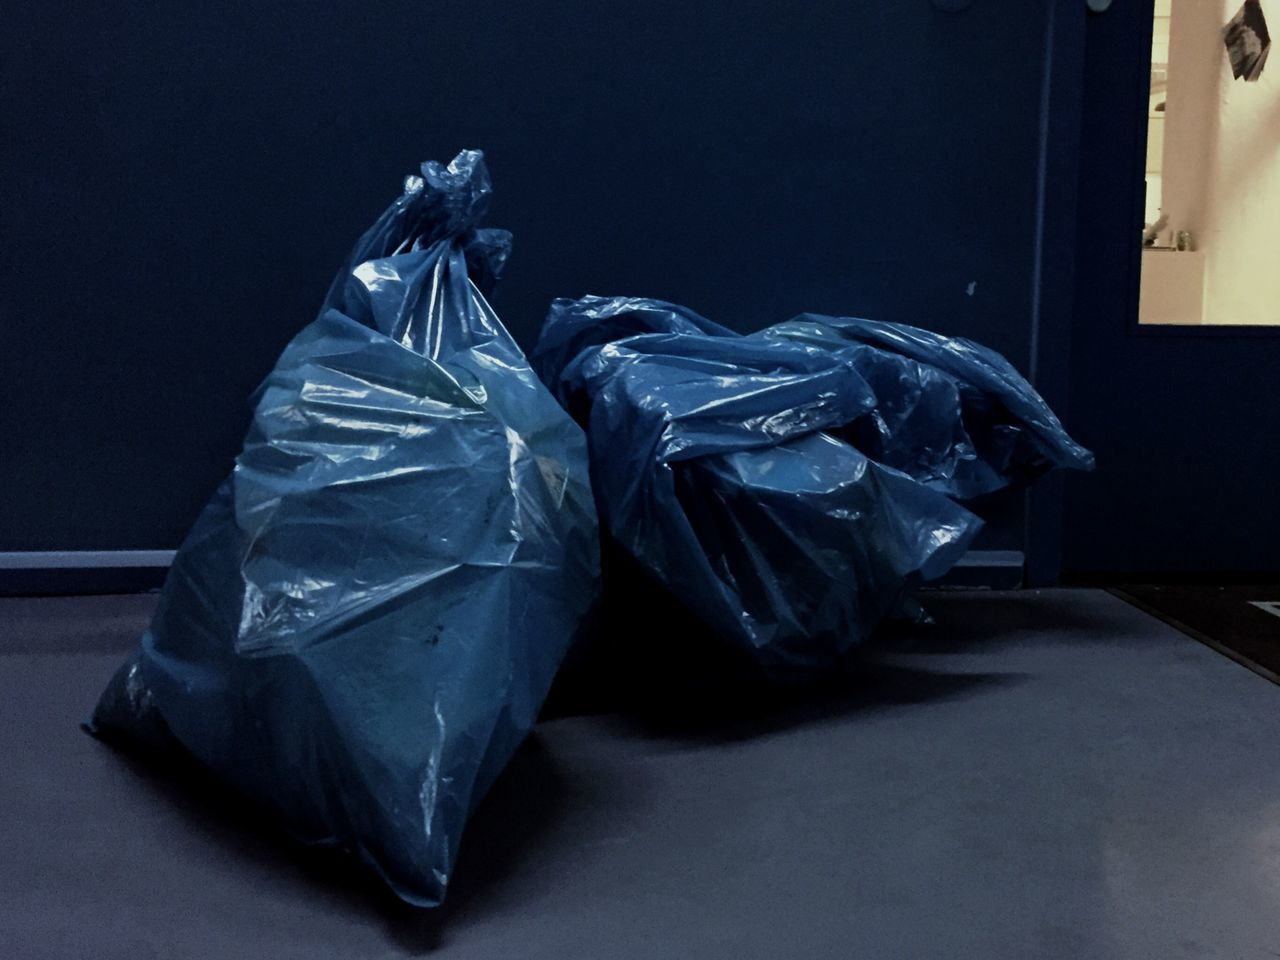 Trash Art Textile Crumpled Full Length No People Indoors  Close-up Day Trash Blue